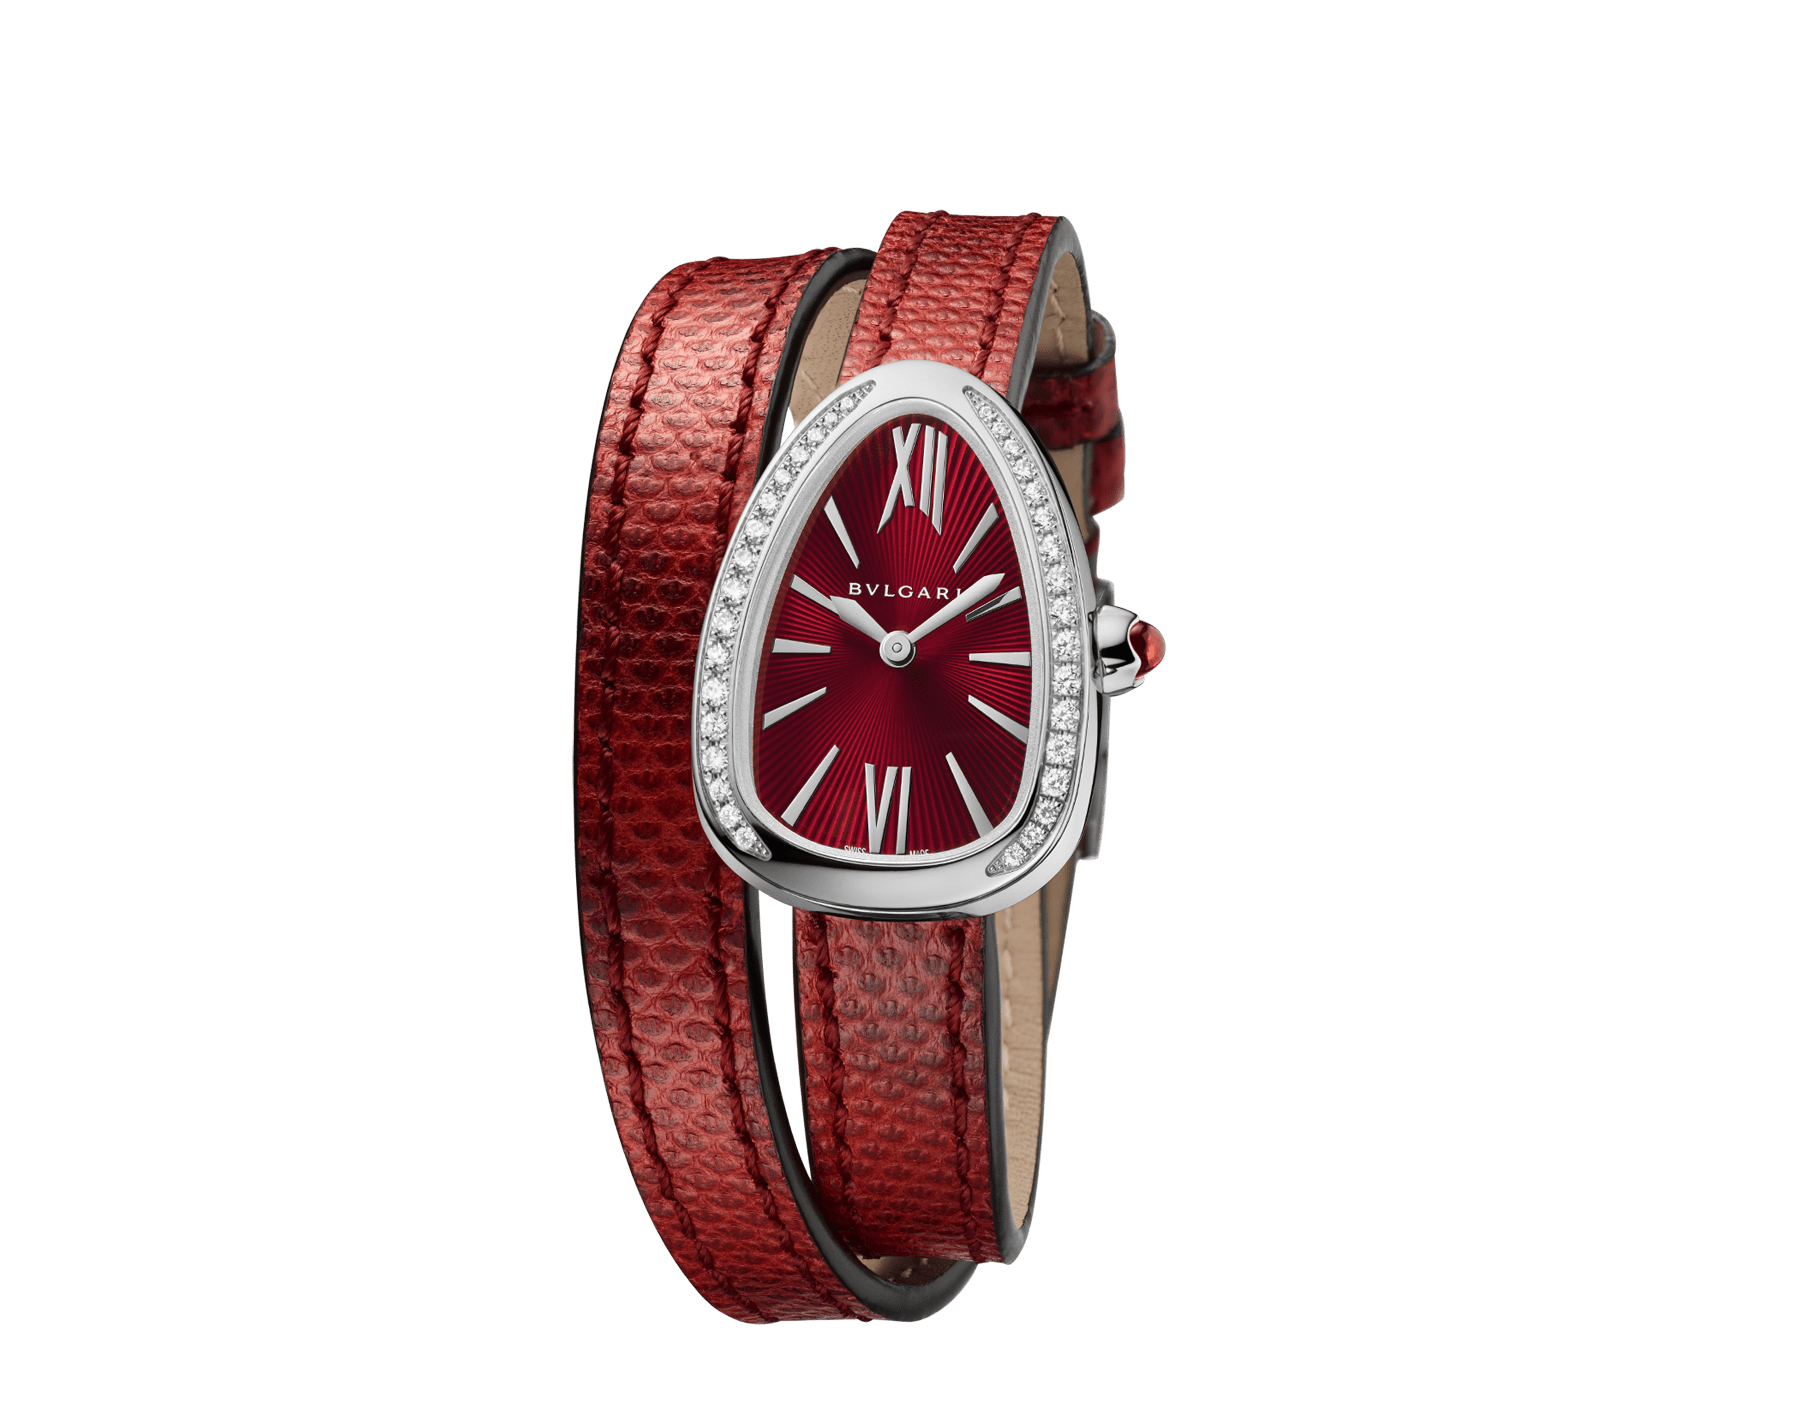 Serpenti watch with stainless steel case set with diamonds, red lacquered dial and interchangeable double spiral bracelet in red karung leather. 102780 image 2